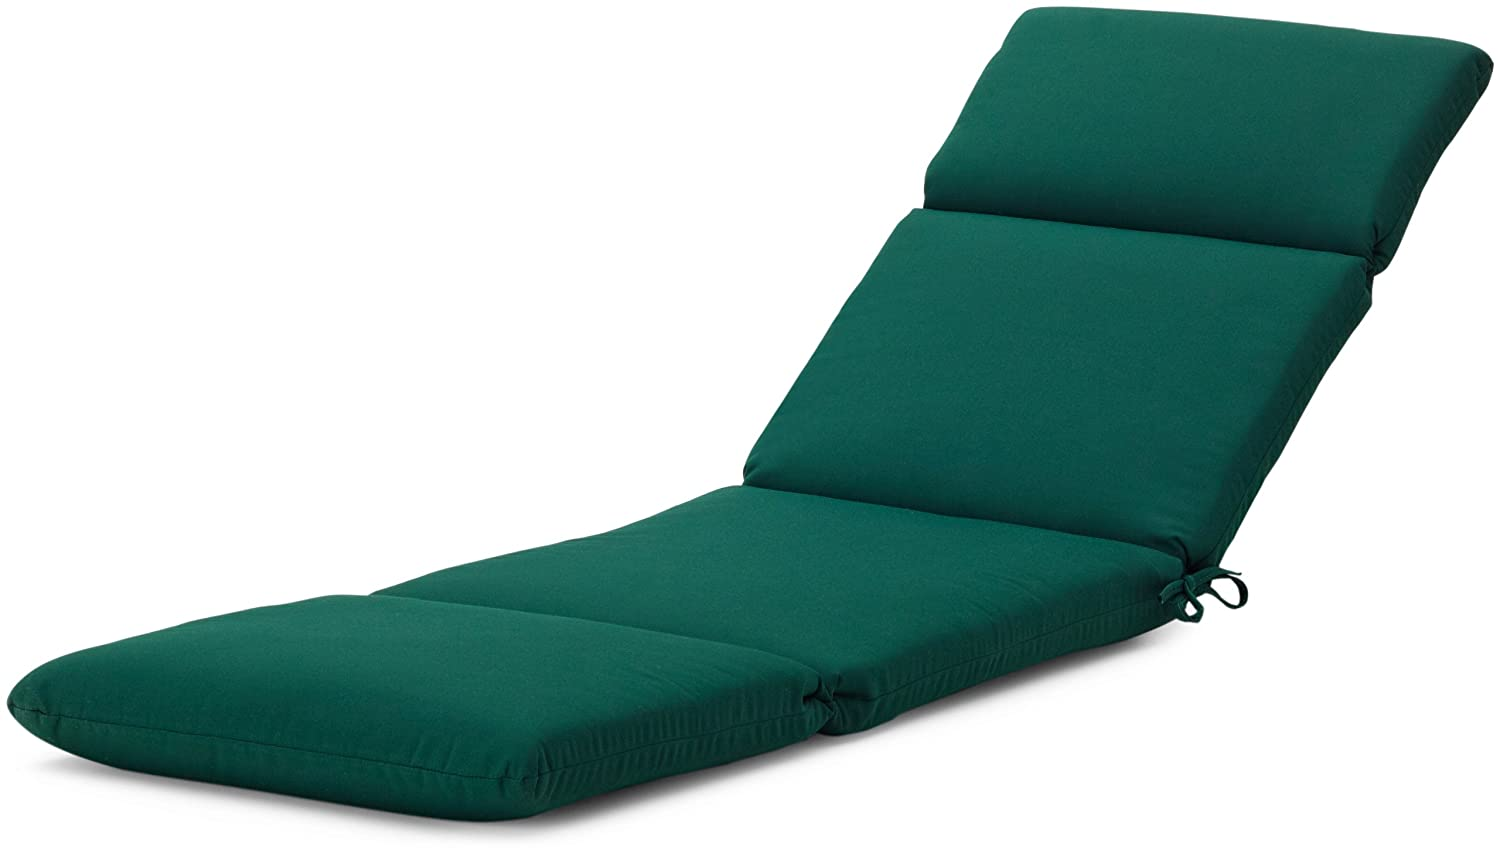 Hardwood chaise lounge sunbrellla cushion reversible for Chaise lounge cushion cover